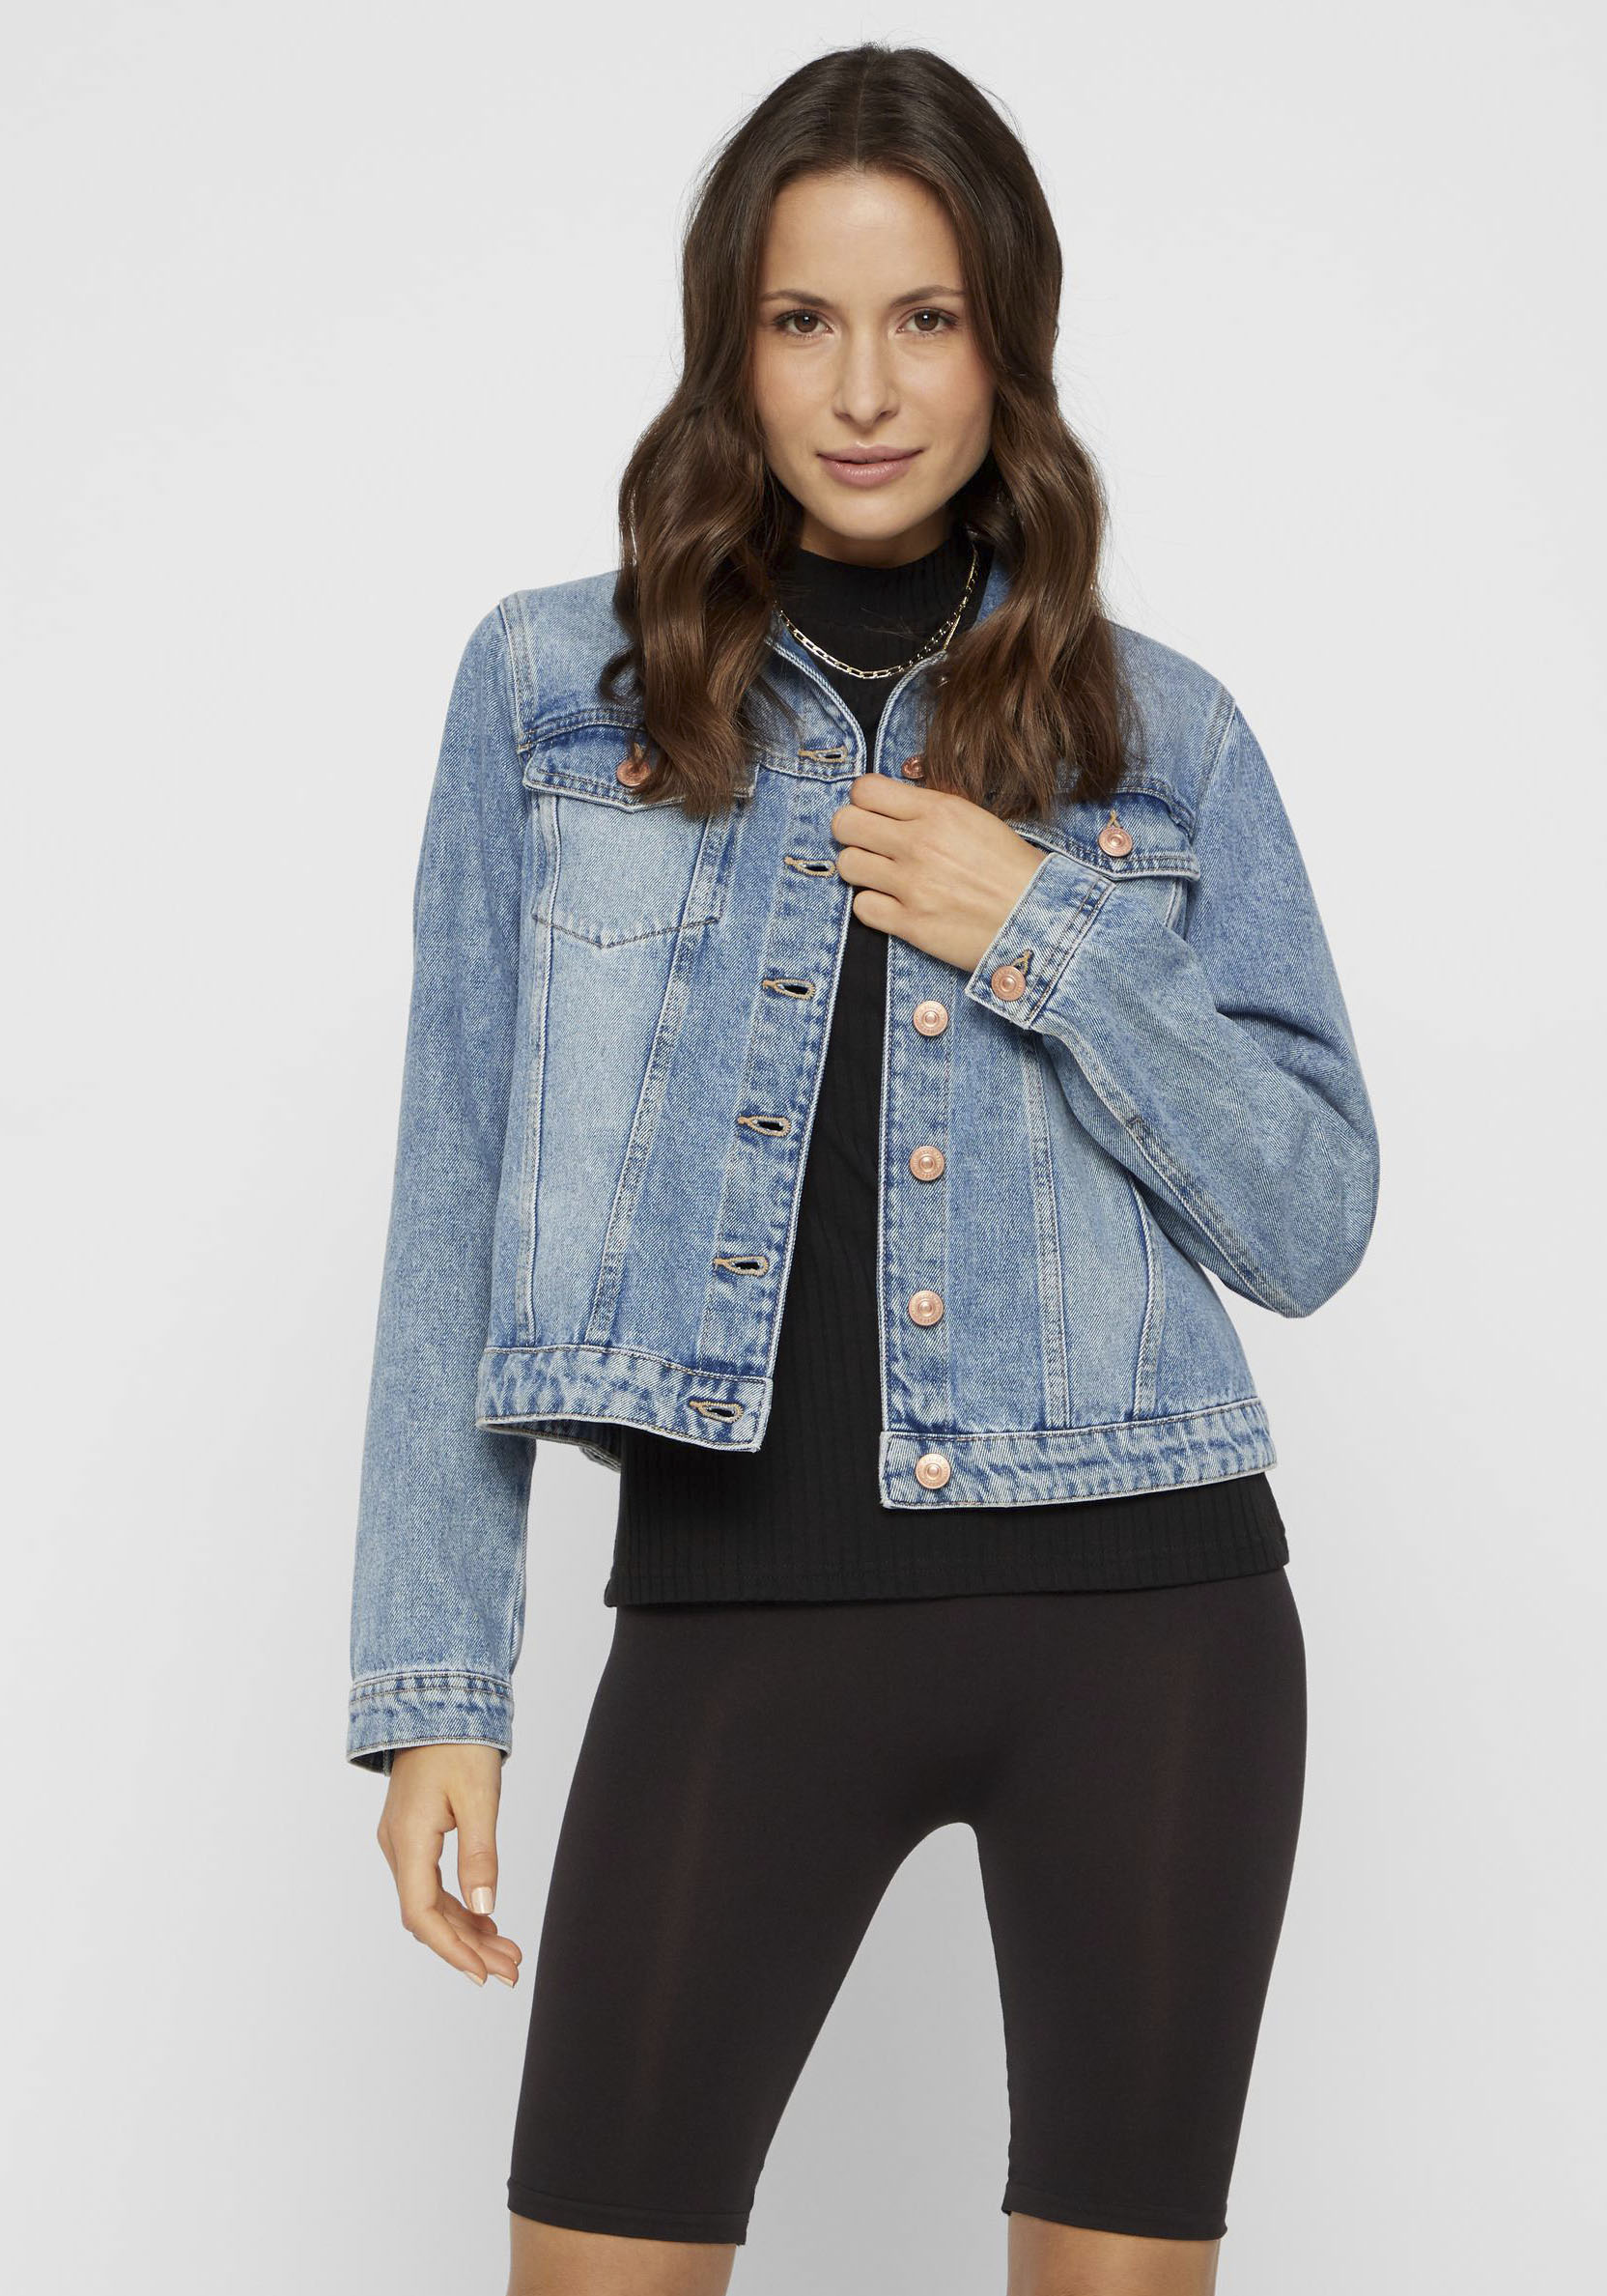 pieces -  Jeansjacke PCLOU, in leichter Used-Waschung